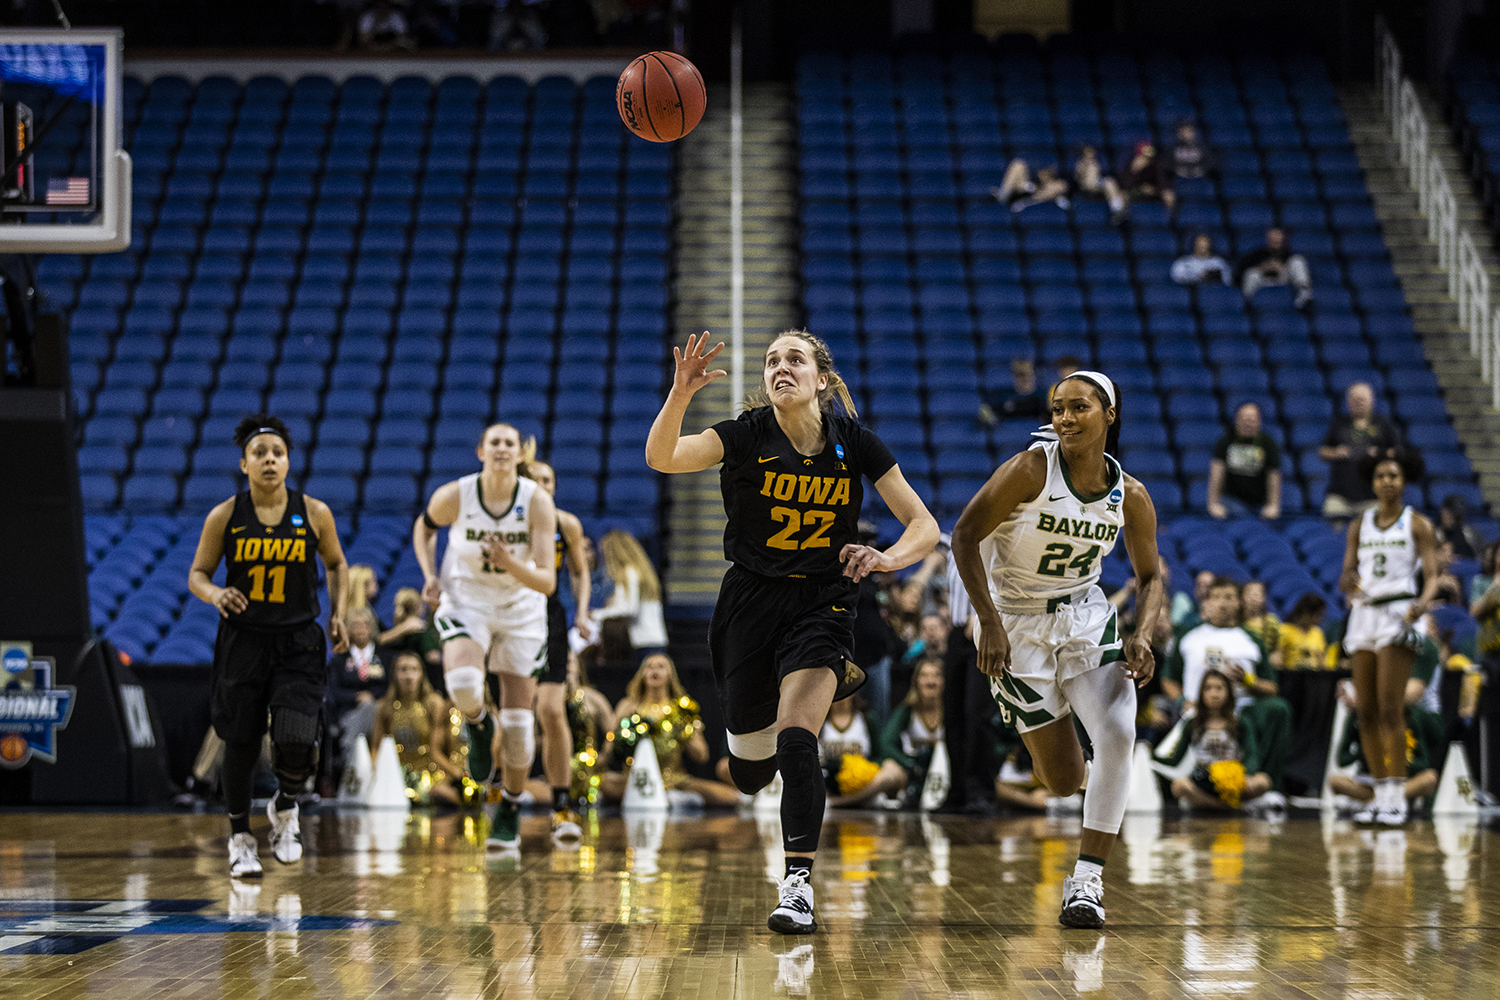 Iowa+guard+Kathleen+Doyle+and+Baylor+guard+Chloe+Jackson+run+for+the+ball+during+the+NCAA+Elite+8+game+against+Baylor+at+the+Greensboro+Coliseum+Complex+on+Monday%2C+April+1%2C+2019.+The+Bears+defeated+the+Hawkeyes+85-53.